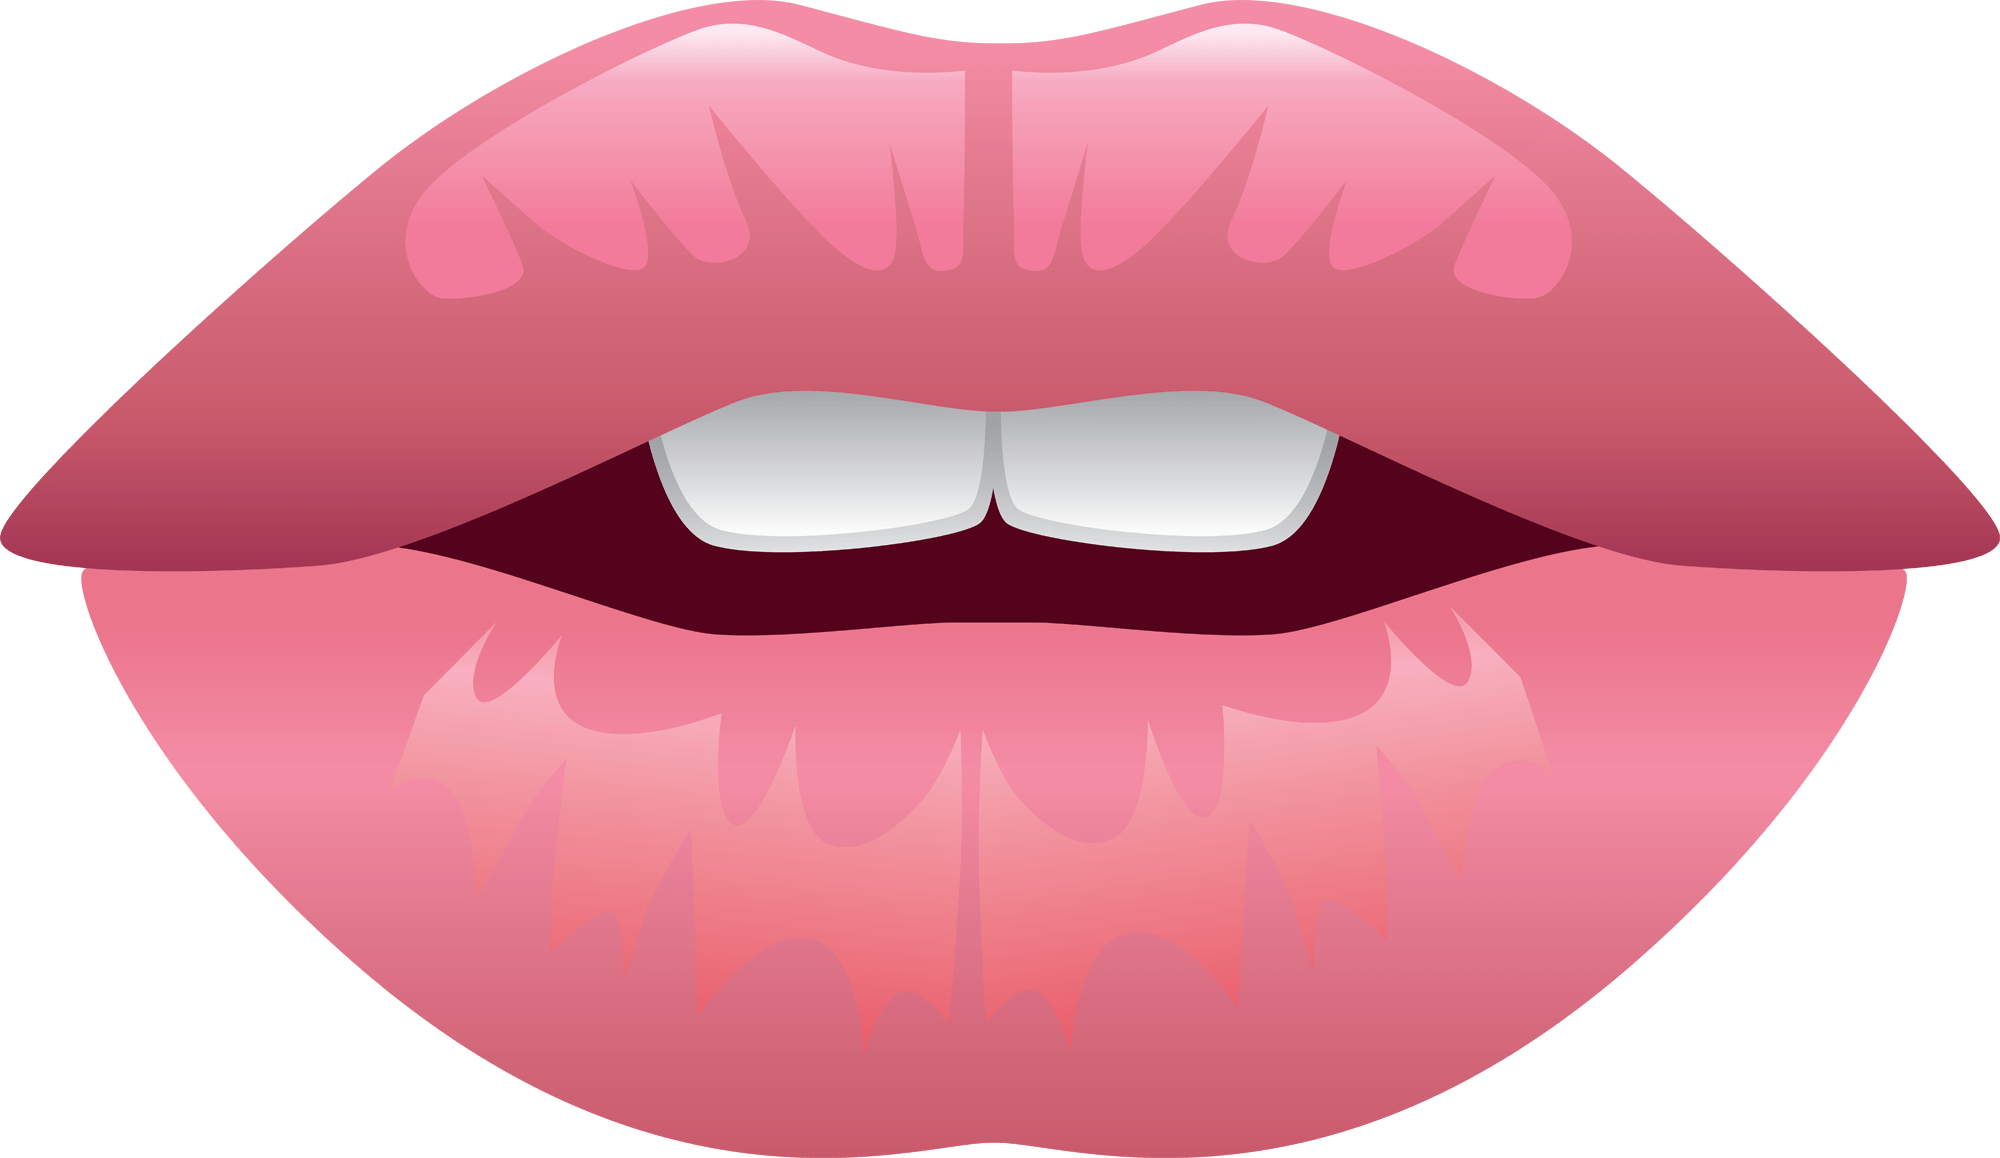 Cartoon nose png. Lips teeth realistic transparent